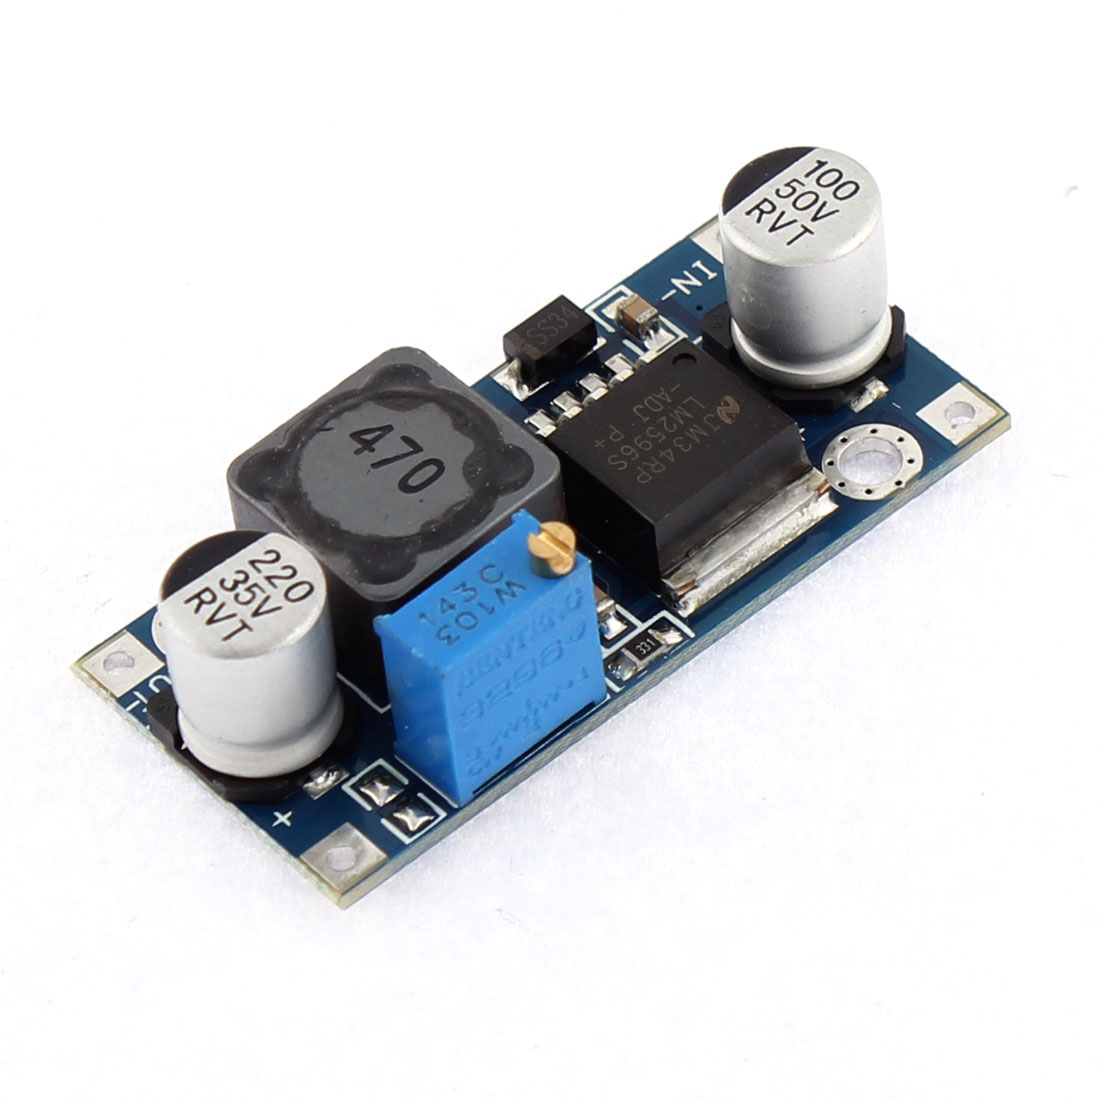 DC-DC Adjustable Buck Step Down Power Supply Module Converter Regulator LM2596